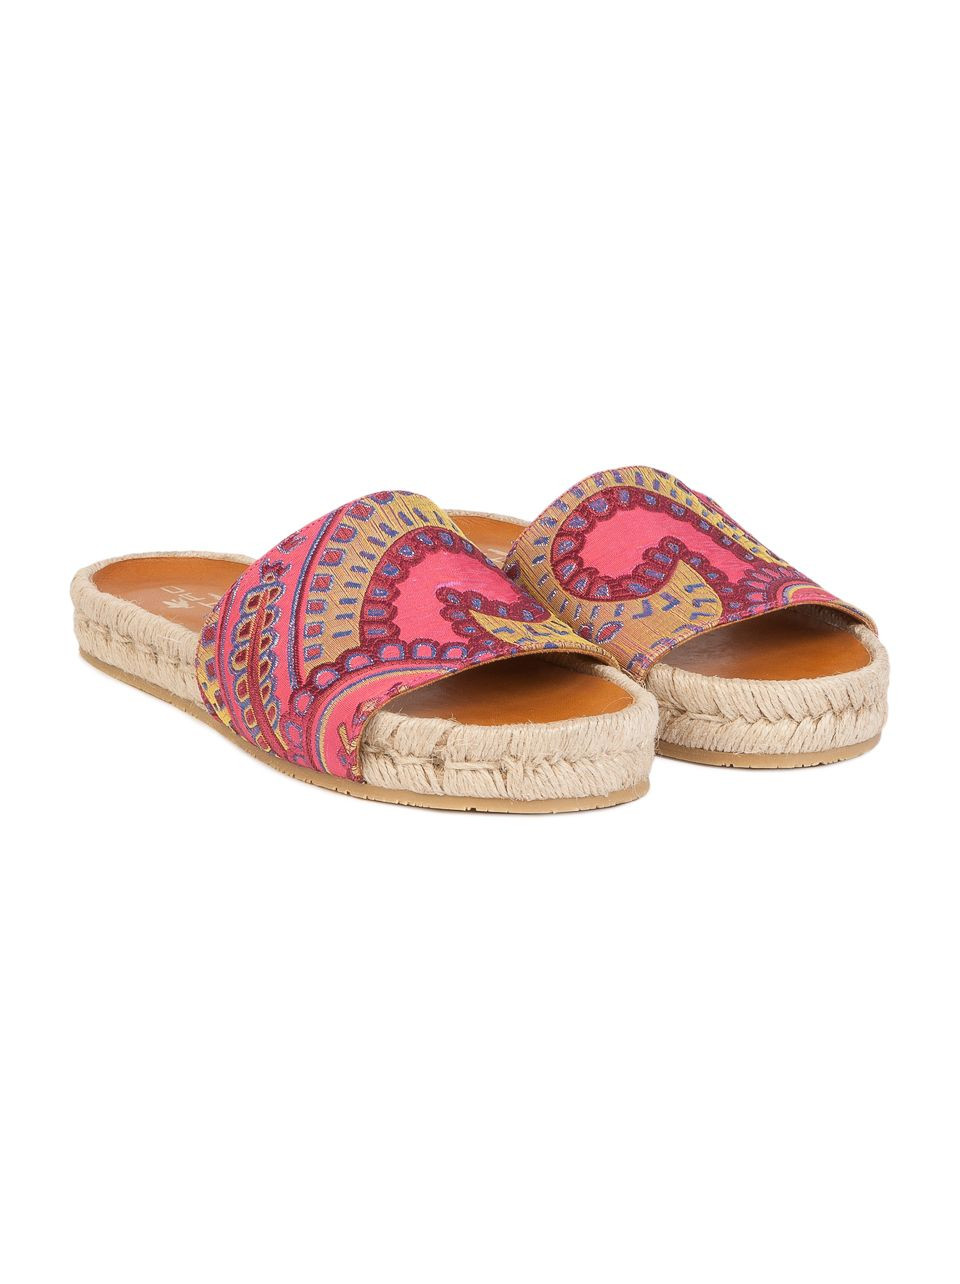 These multicolored Paisley jacquard flat sandals feature a rope-edged bottom and are perfect for adding a hint of style to a casual look.